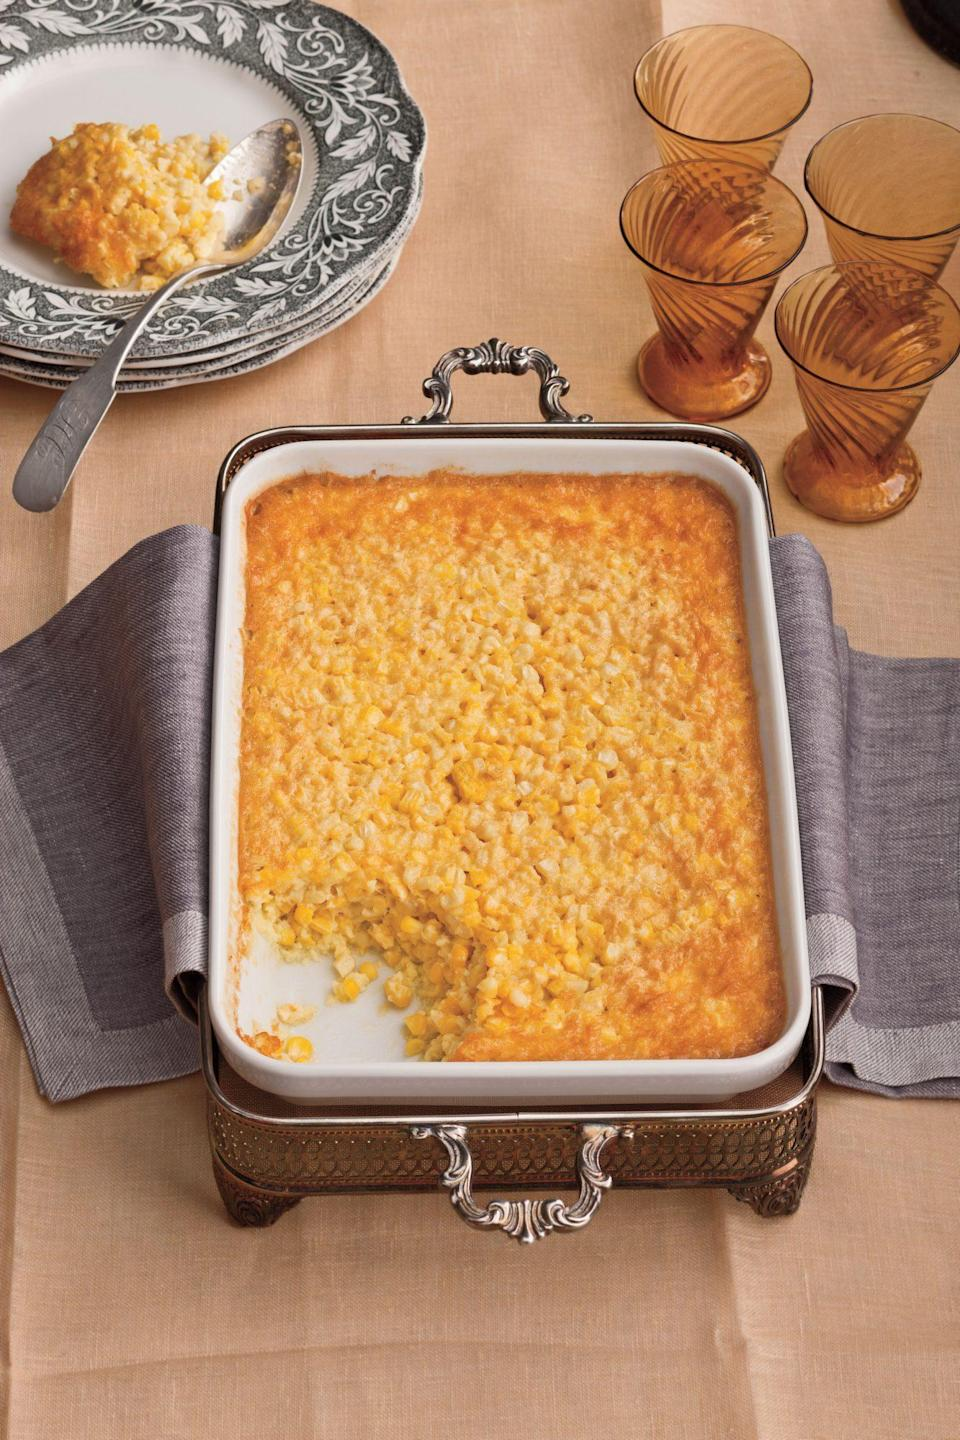 """<p><strong>Recipe: <a href=""""https://www.southernliving.com/recipes/tees-corn-pudding-recipe"""" rel=""""nofollow noopener"""" target=""""_blank"""" data-ylk=""""slk:Tee's Corn Pudding"""" class=""""link rapid-noclick-resp"""">Tee's Corn Pudding</a></strong></p> <p>This classic holiday side requires just eight ingredients and a few stirs before it's ready to bake. </p>"""